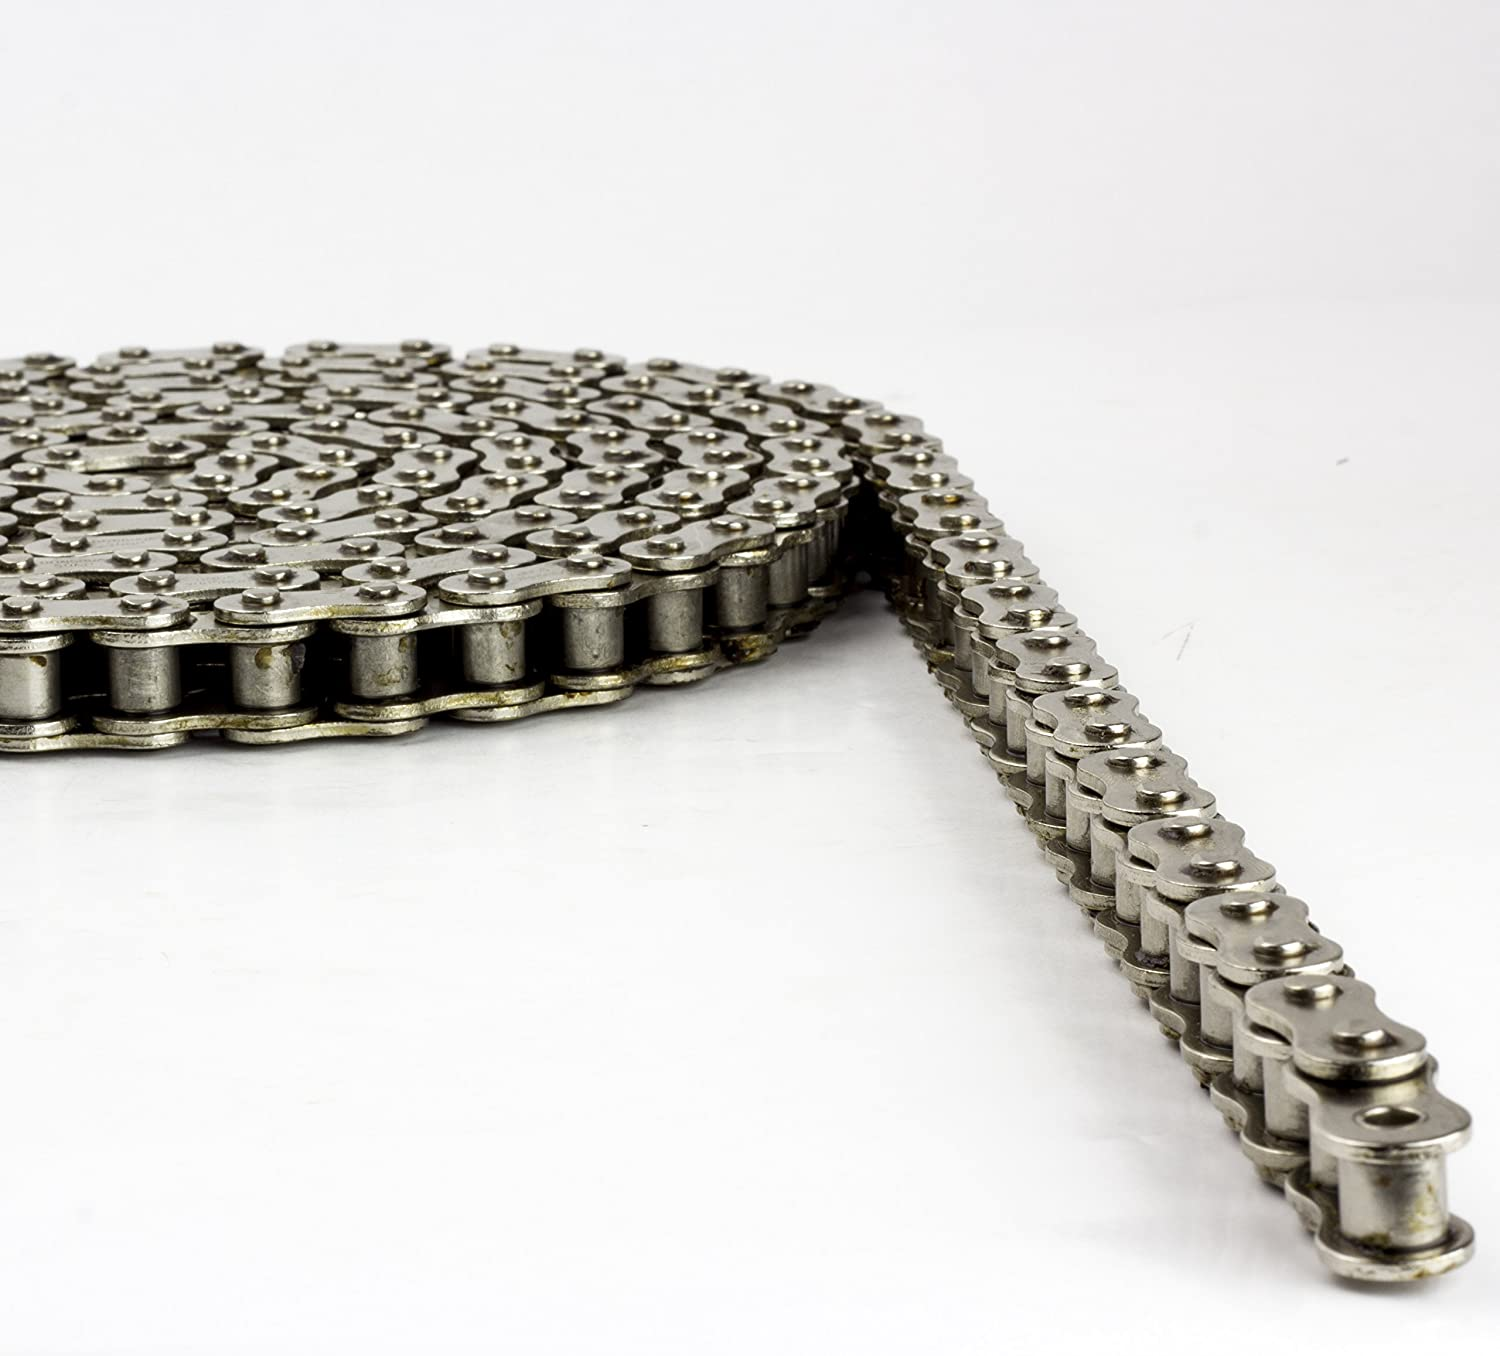 240 Links Corrosion Resistant Jeremywell #40NP Nickel Plated Roller Chain 10ft with 1 Master Link